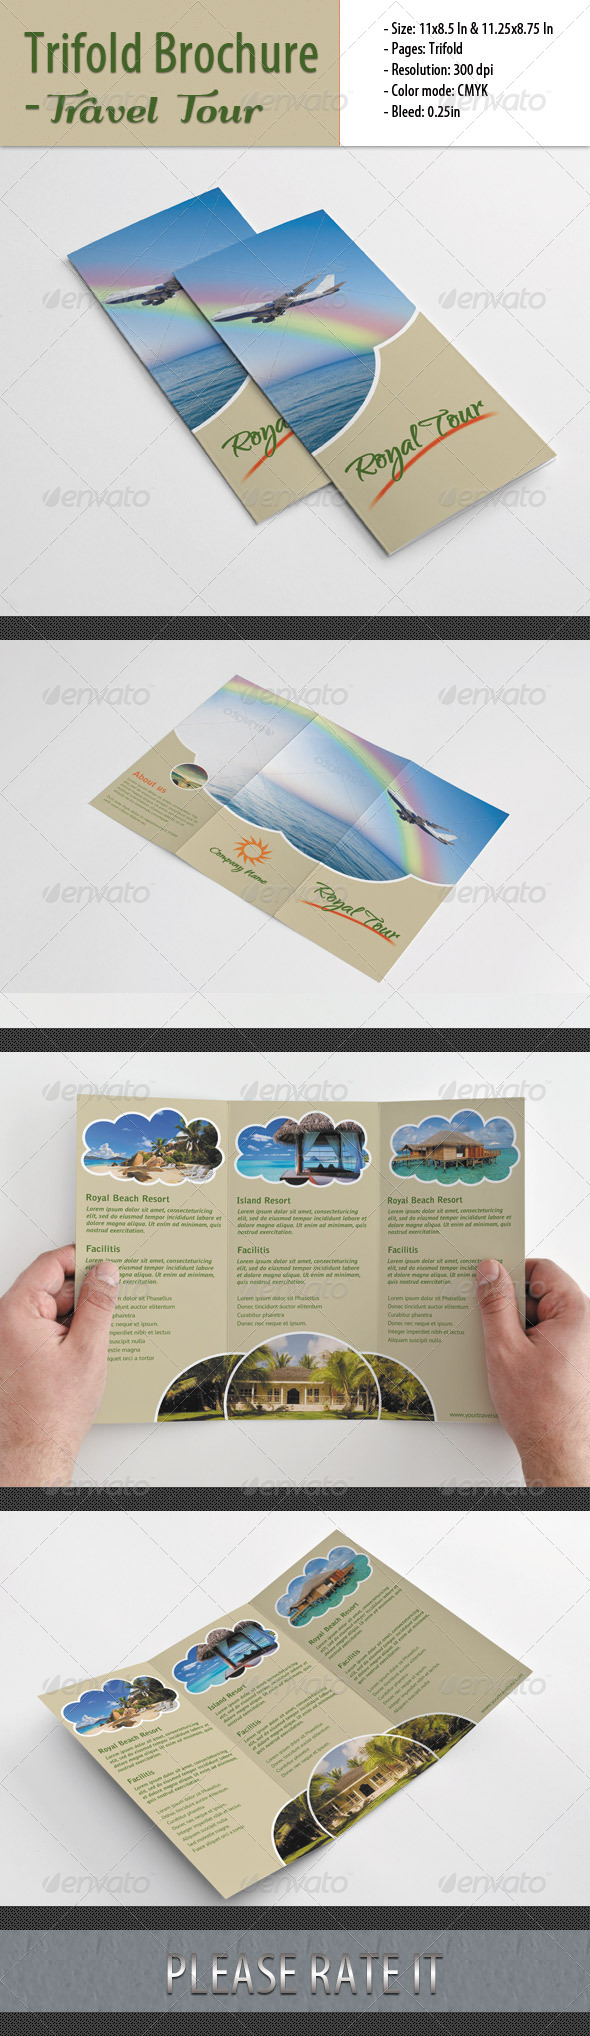 Trifold Brochure For Travel Tour - Corporate Brochures